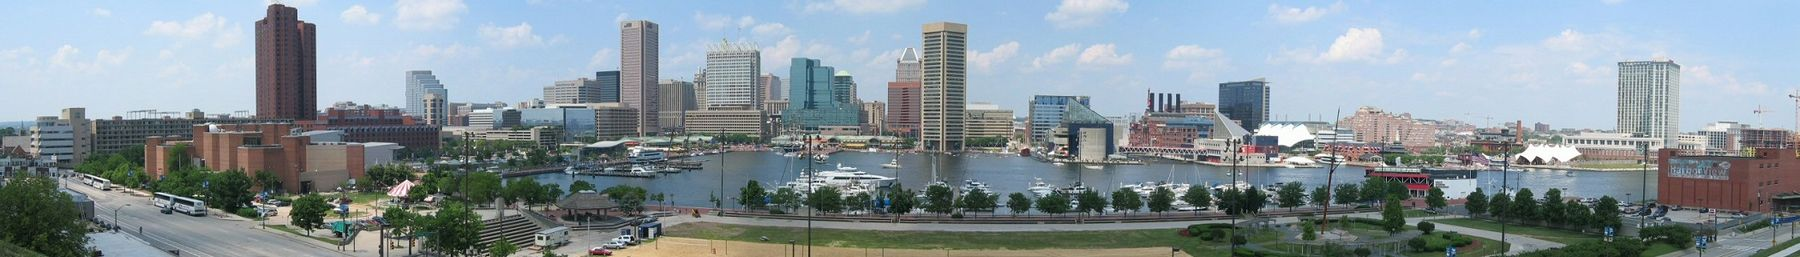 Baltimore Inner Harbor Panorama banner.jpg